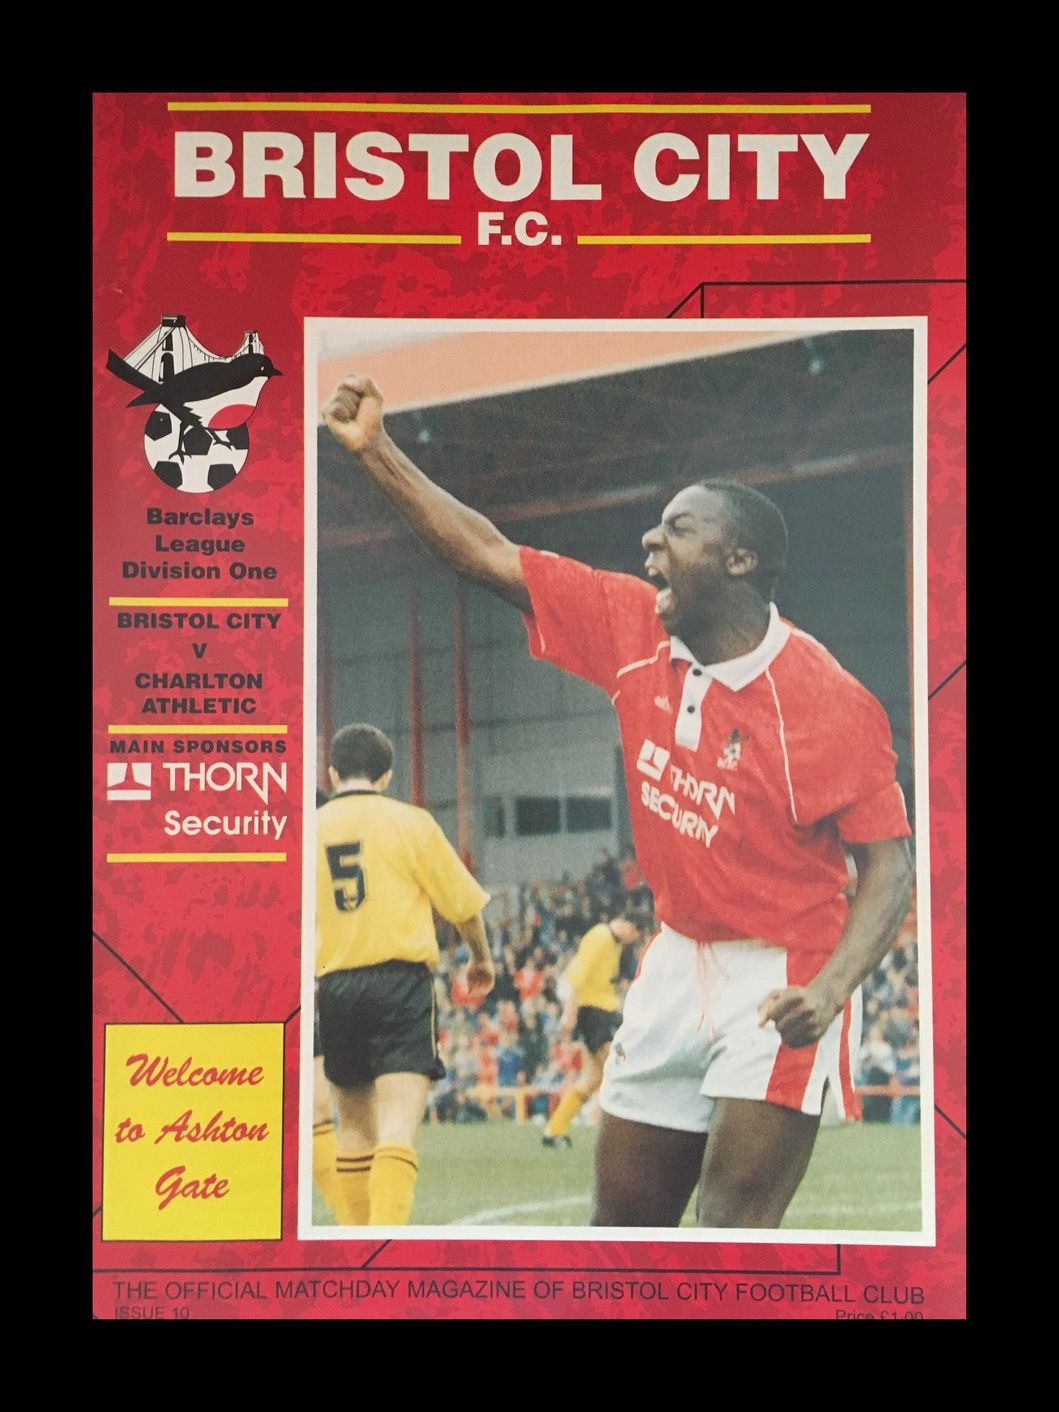 Bristol City v Charlton Athletic 10-10-1992 Programme